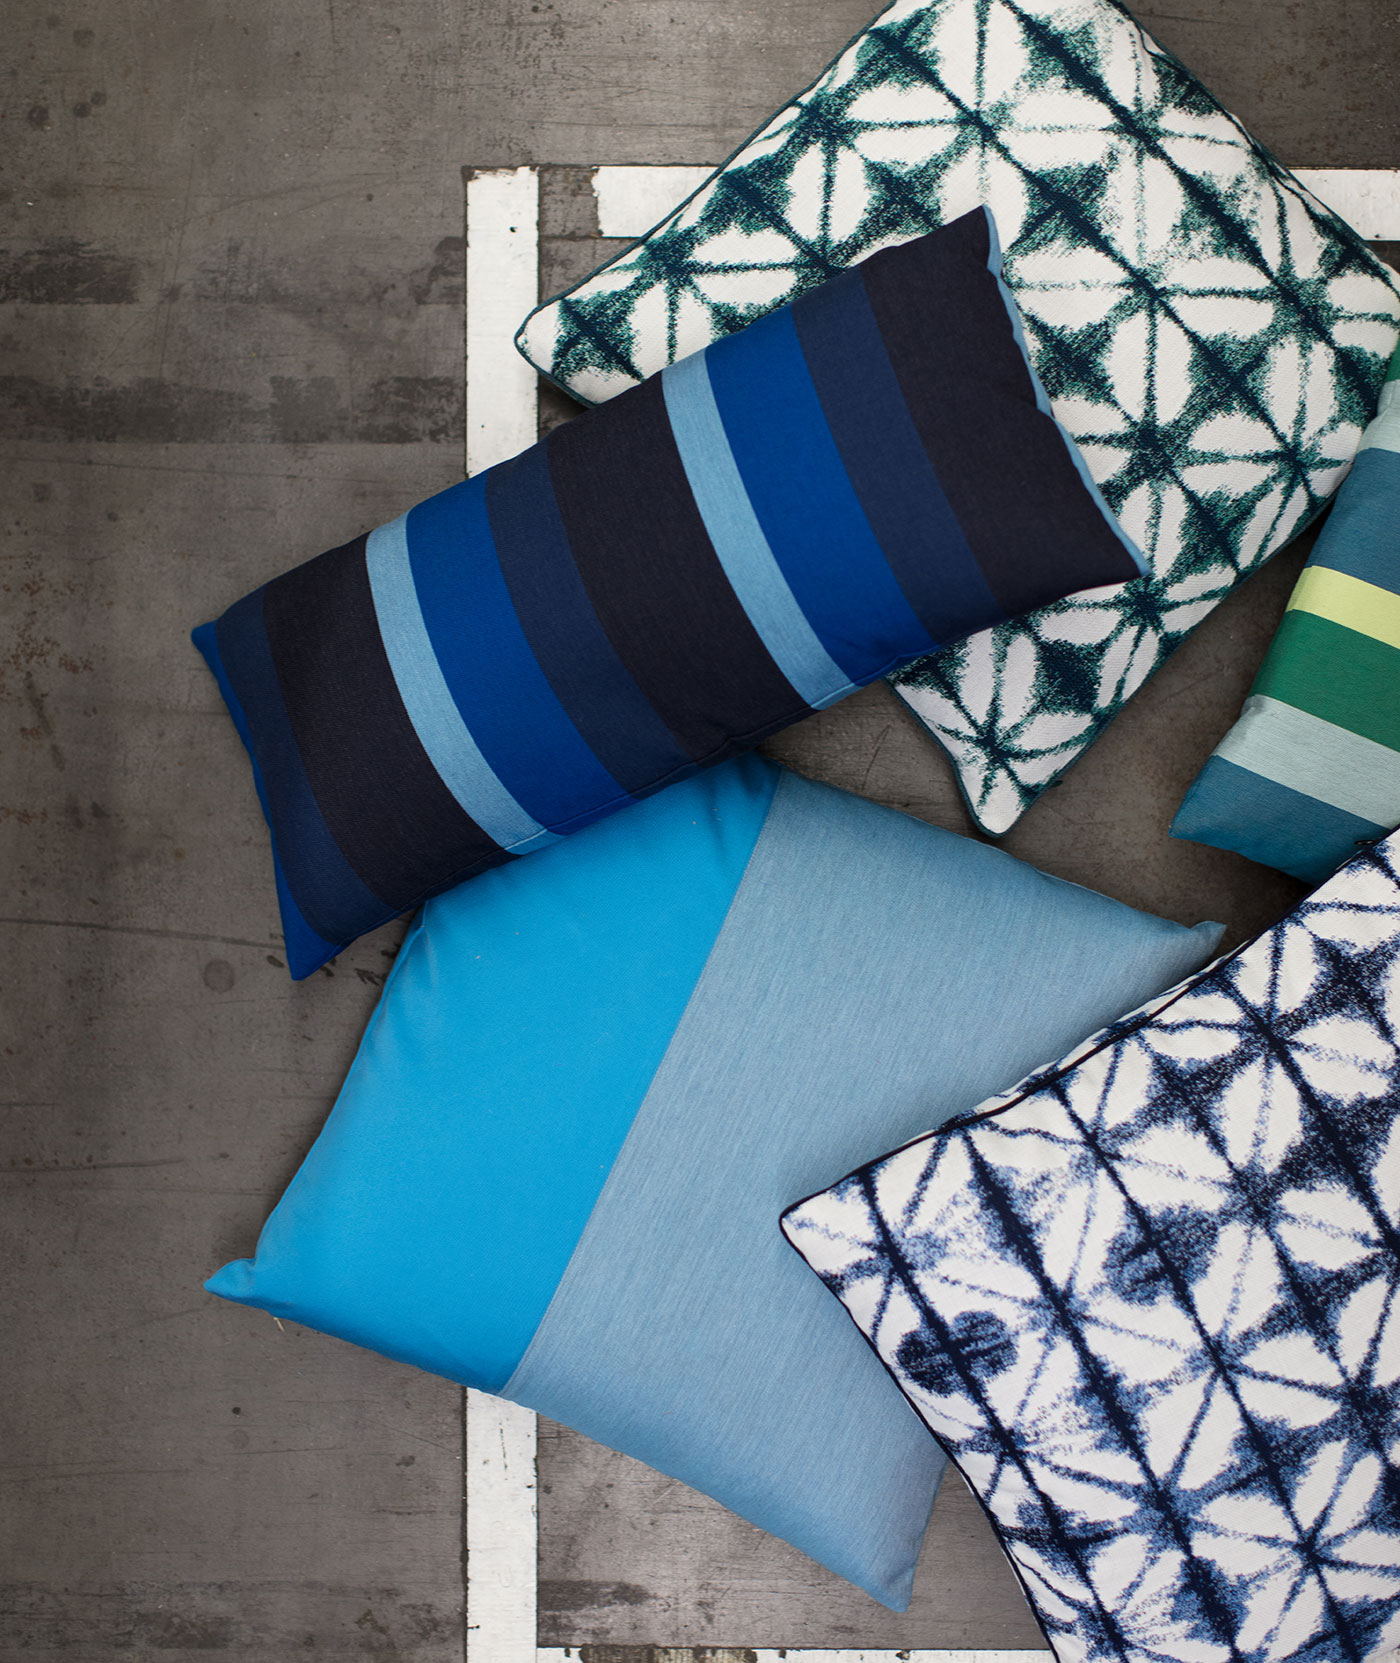 Pillows in blue and green hues are stacked, featuring the Sunbrella Makers fabric collection.